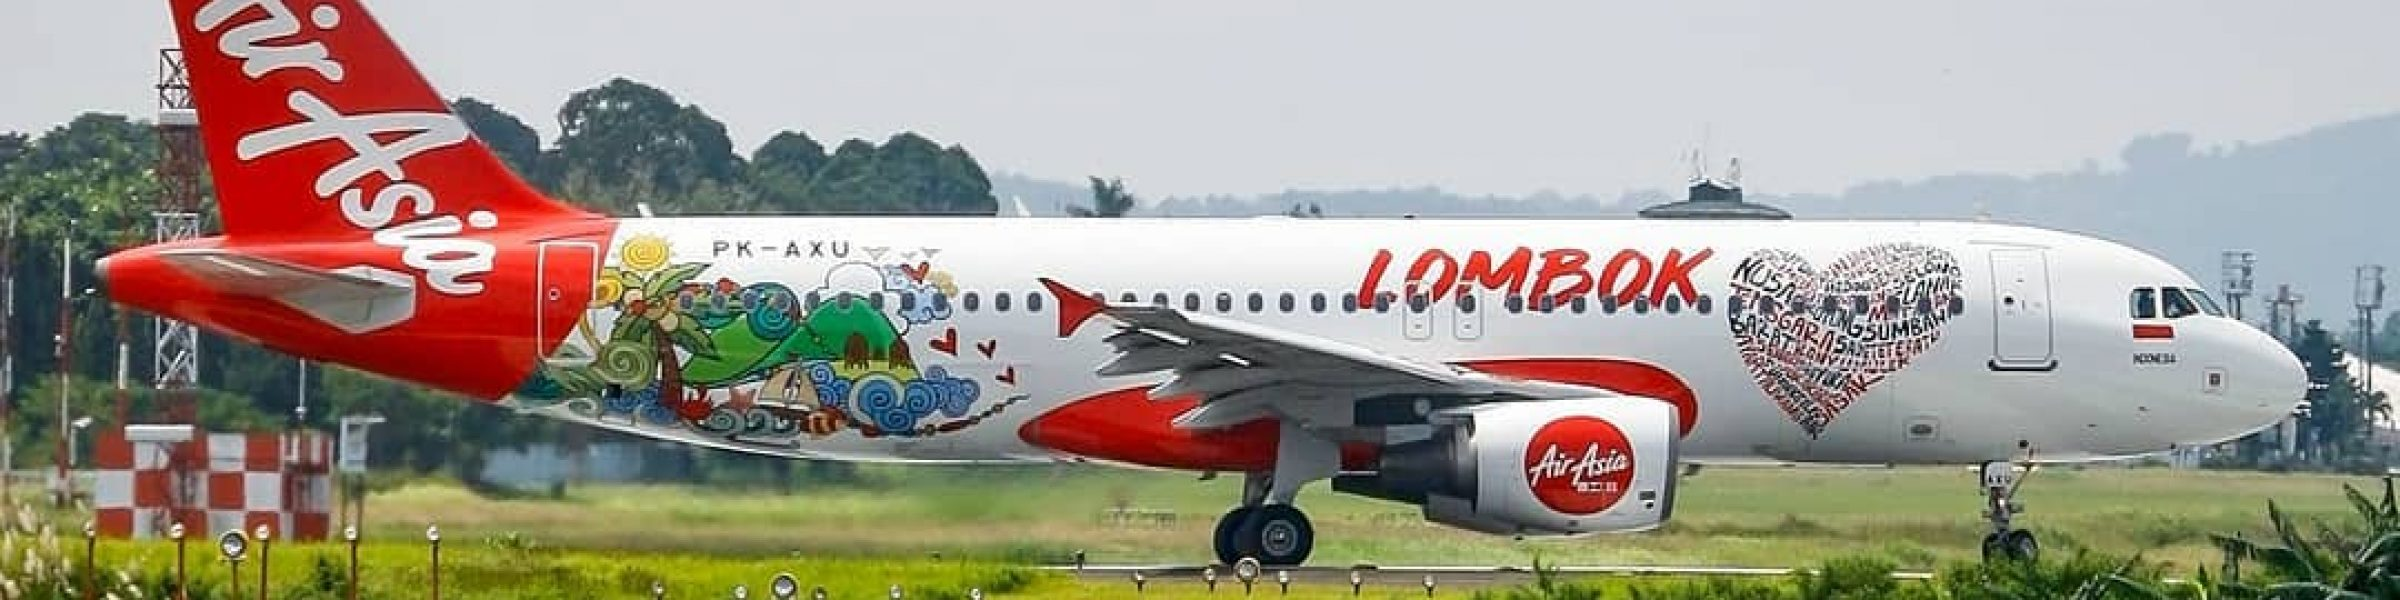 Perth-Lombok direct flight by Airasia